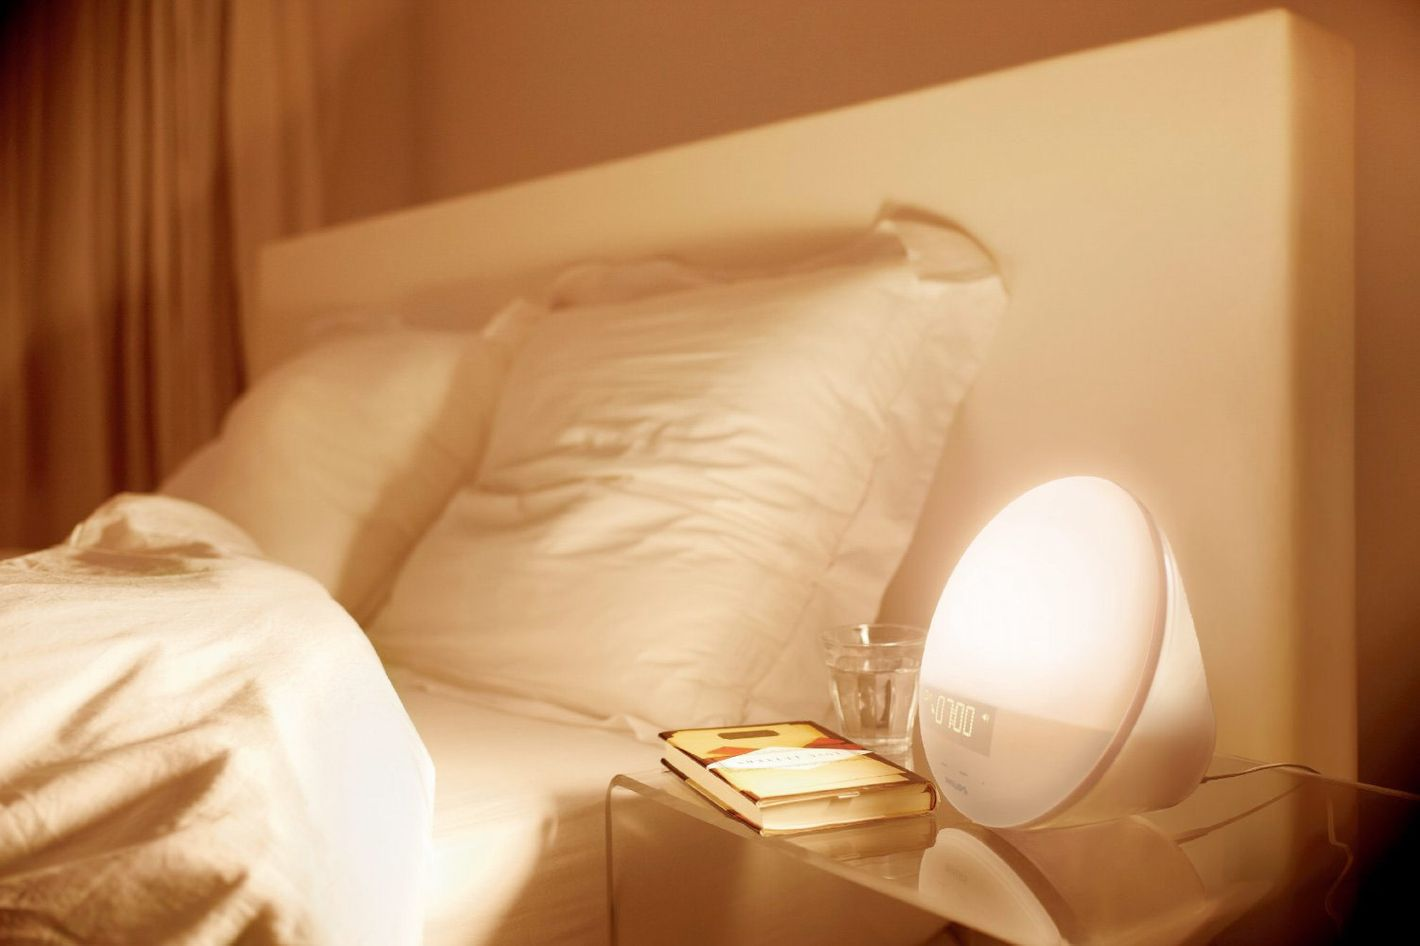 Philips Morning Wake Up Light